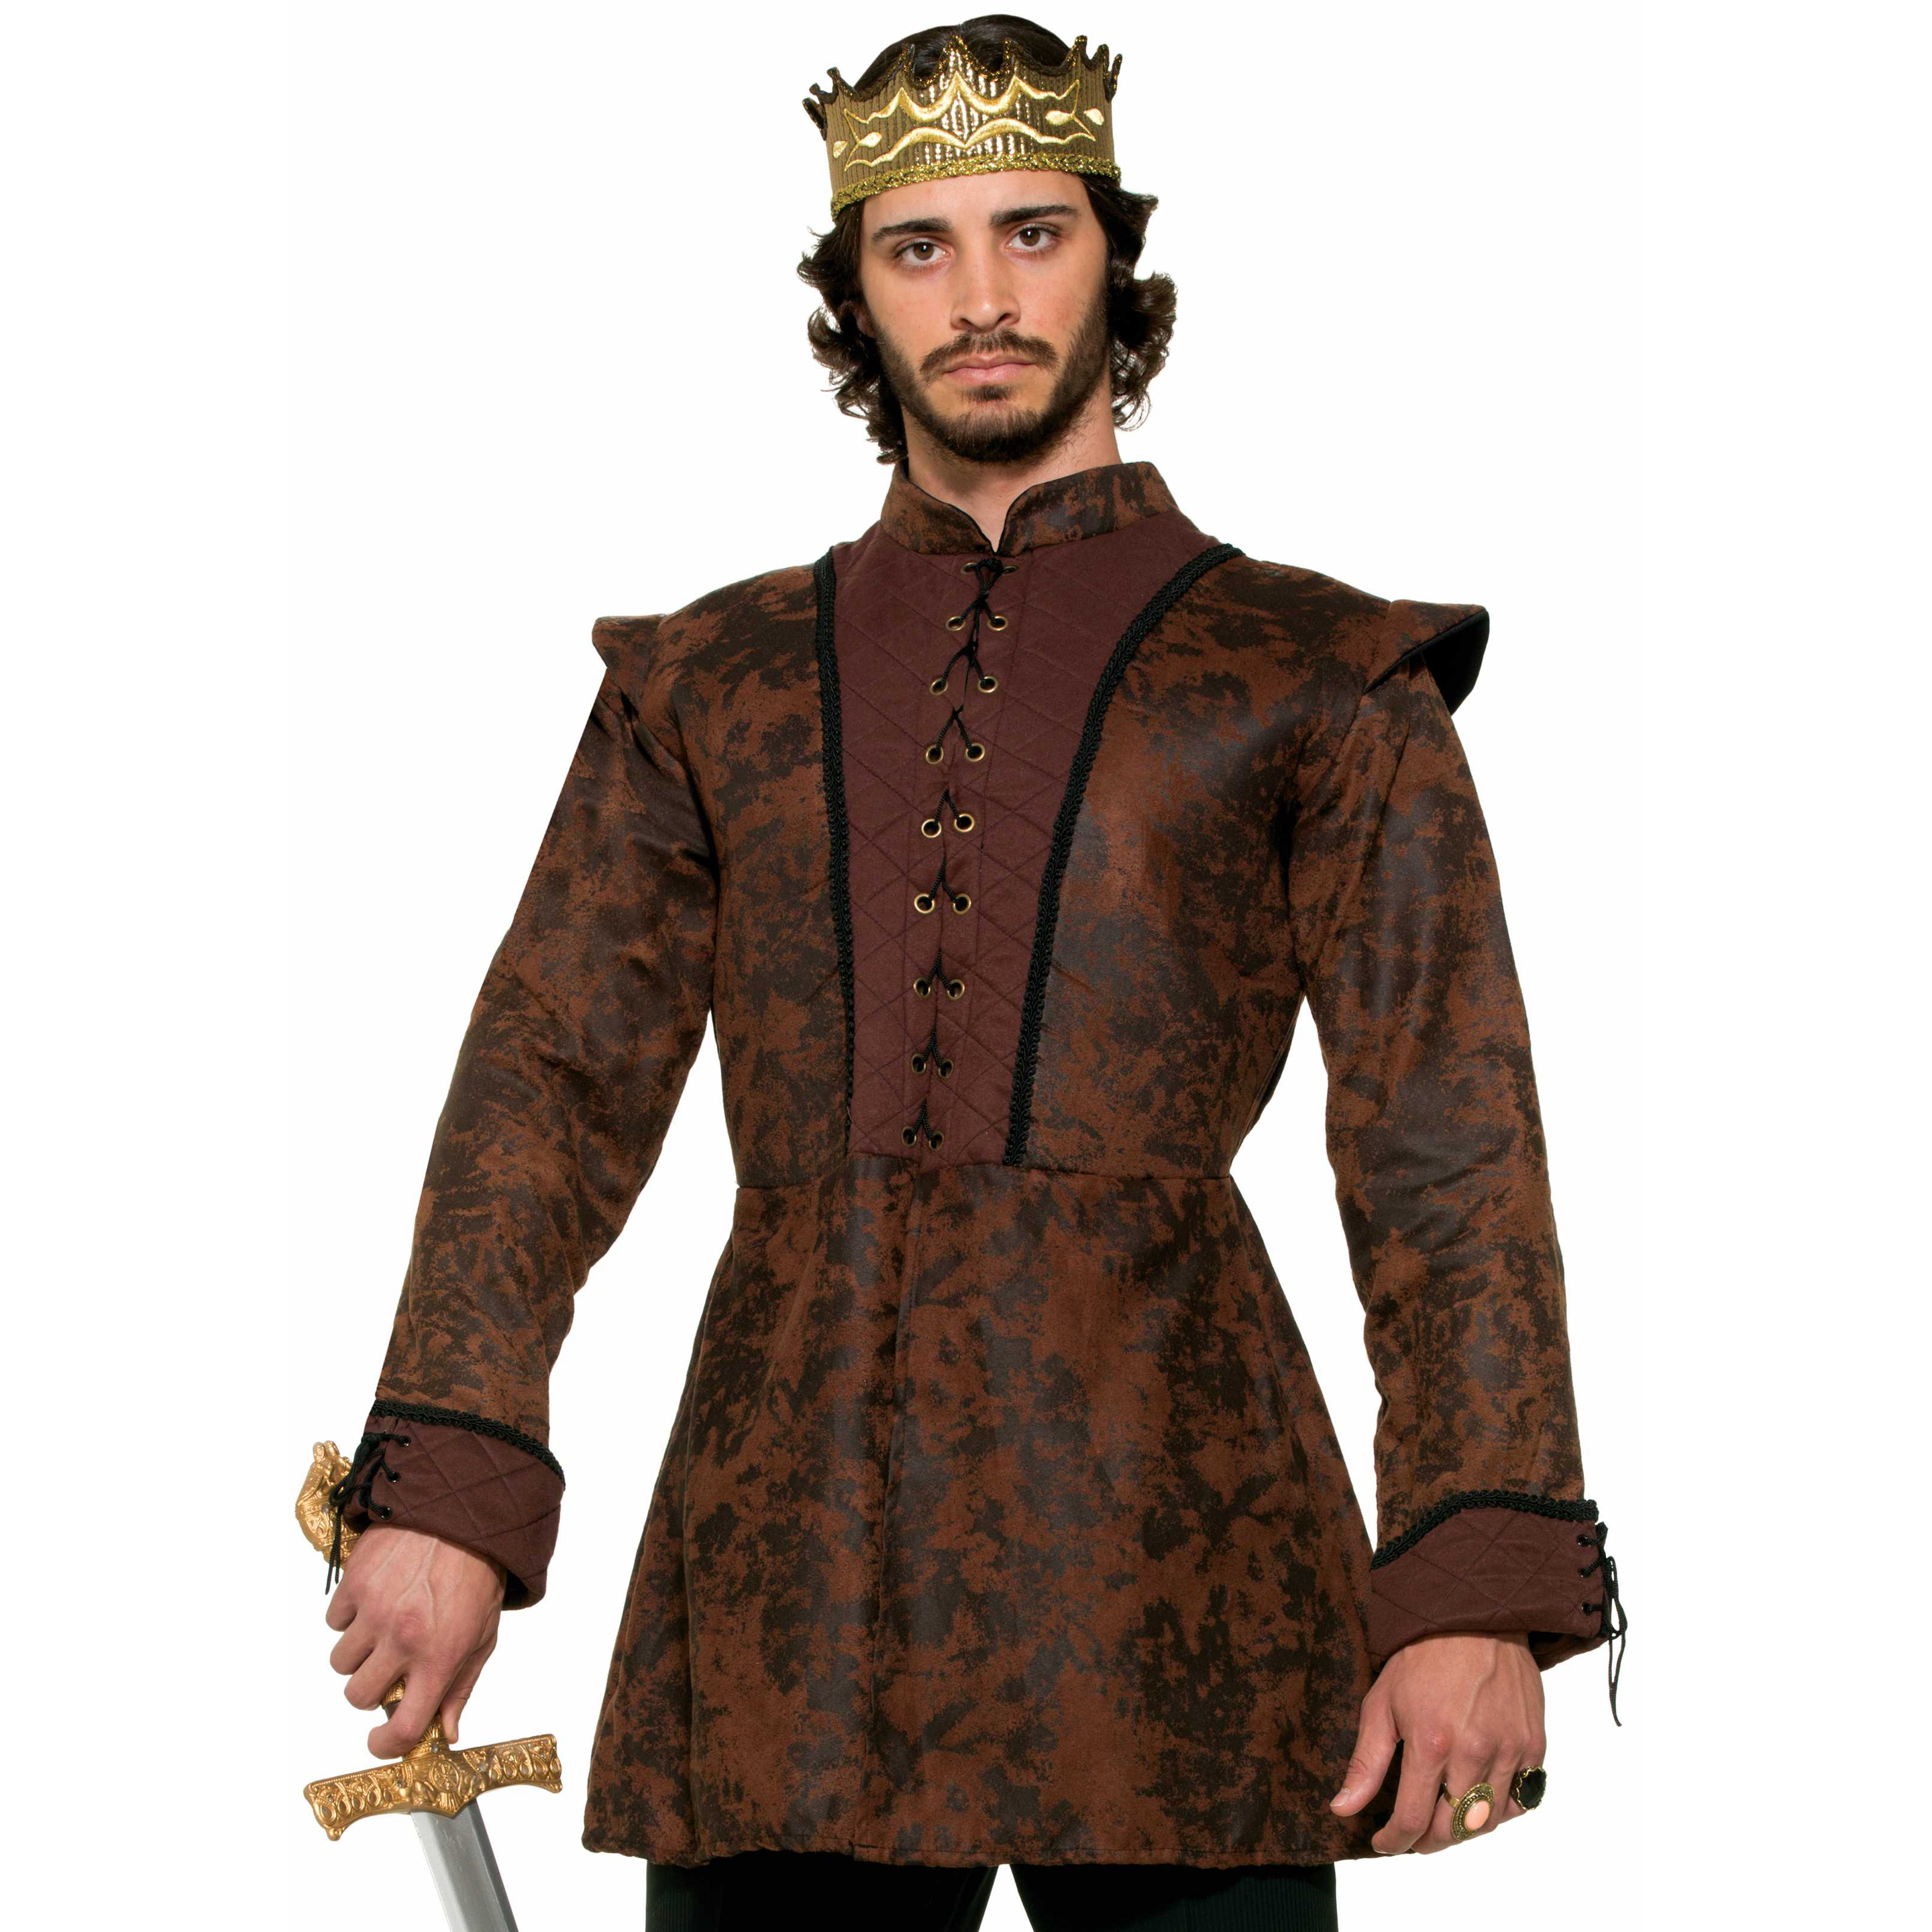 72845 Fantasy King Coat